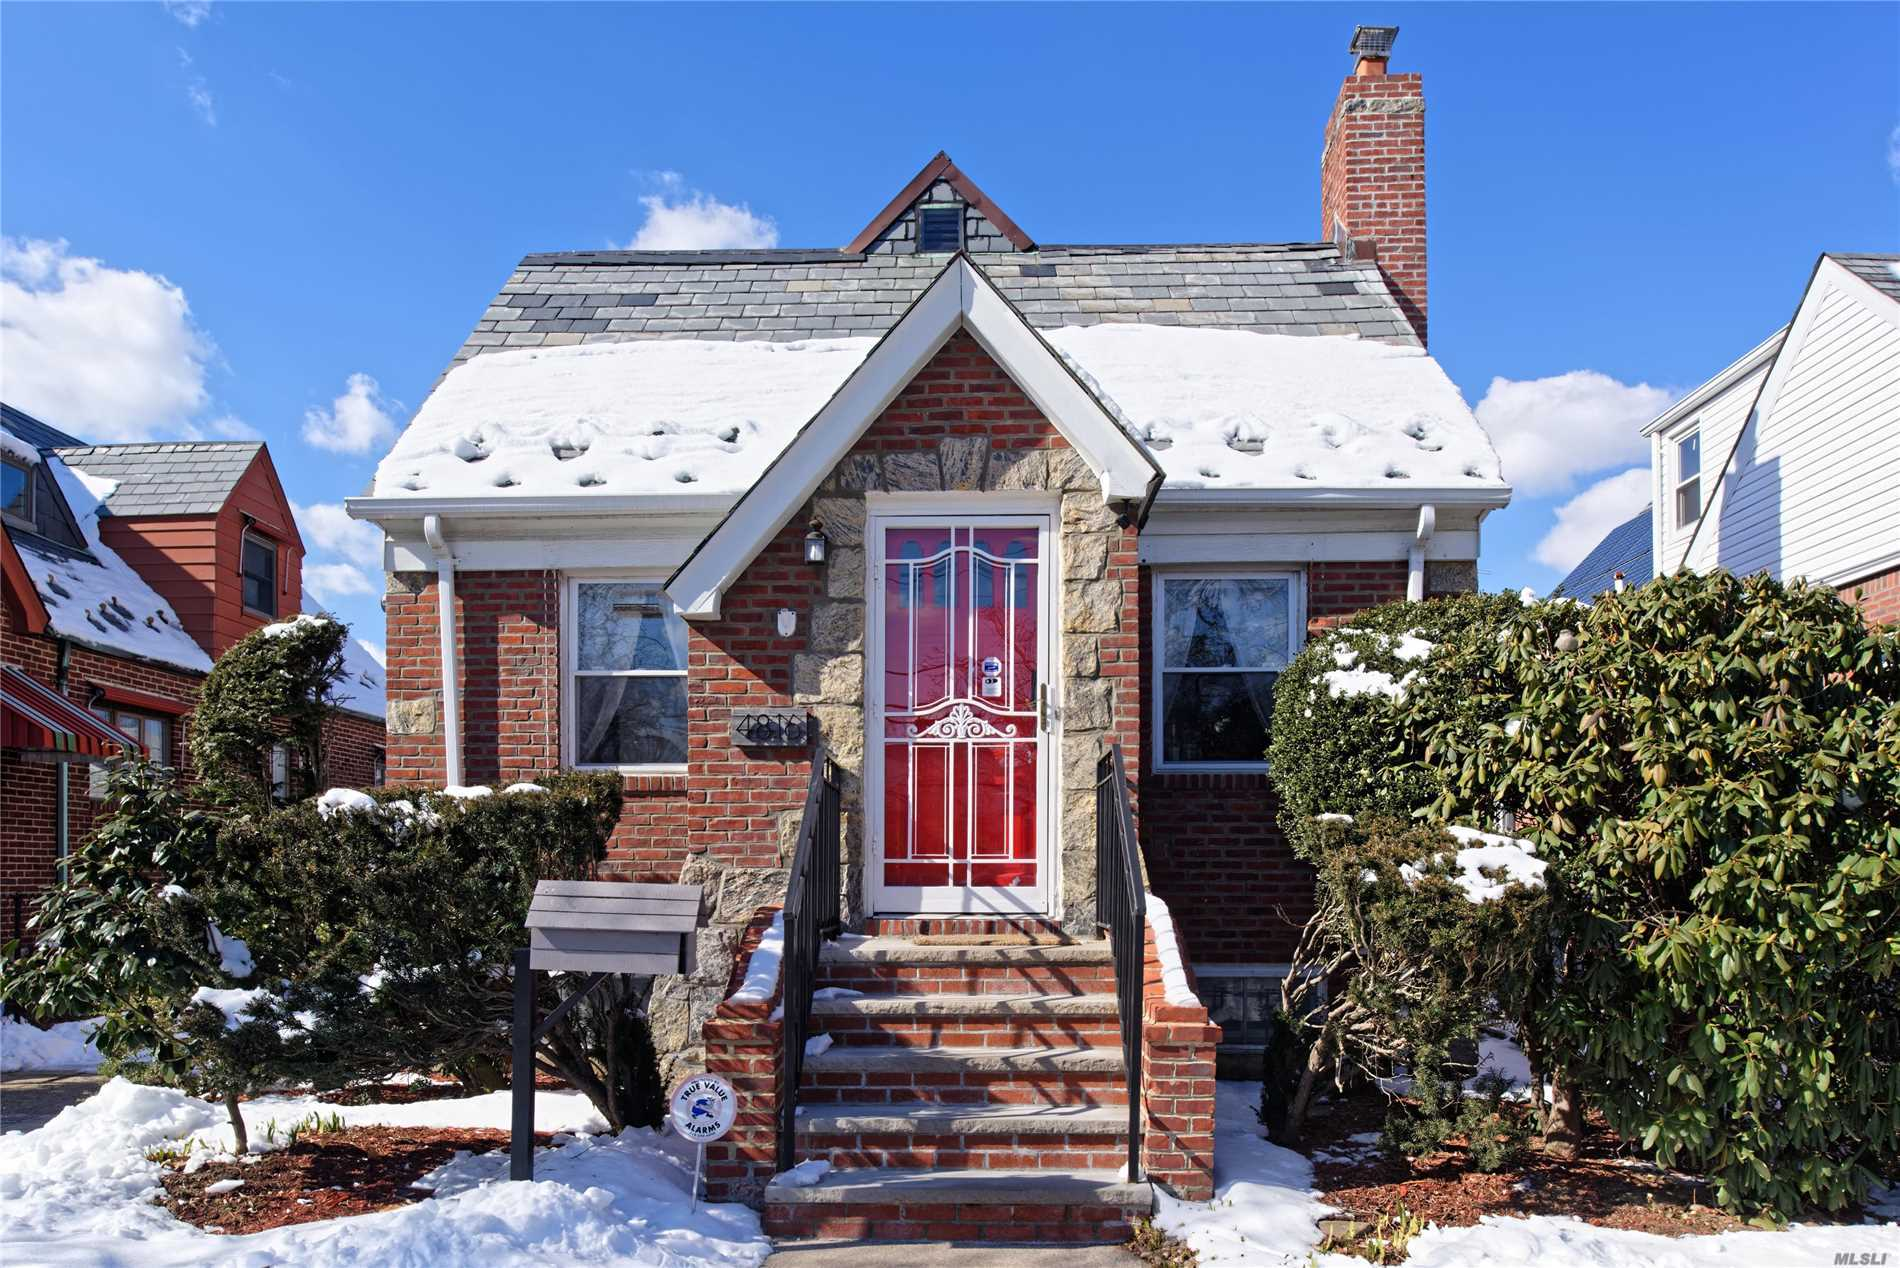 Beautiful Single Dwelling Detached Brick Home In Prime Fresh Meadows. Just Blocks Away From Utopia Pkwy, Francis Lewis Blvd & The Long Island Expy; One Block From Q26 Bus Line. 3Brs, LR, Formal Dining Room, Eat-In Kitchen, Long Private Driveway With Detached 1 Car Garage, Full Finished Basement W/Separate Entrance. Features Include Slate Roof With New Copper Valleys, Blown In Insulation, High Ceilings, Nest Smart Thermostat, Mini Split Air, Building size 22x42 on 40x100 Lot.new pointing.